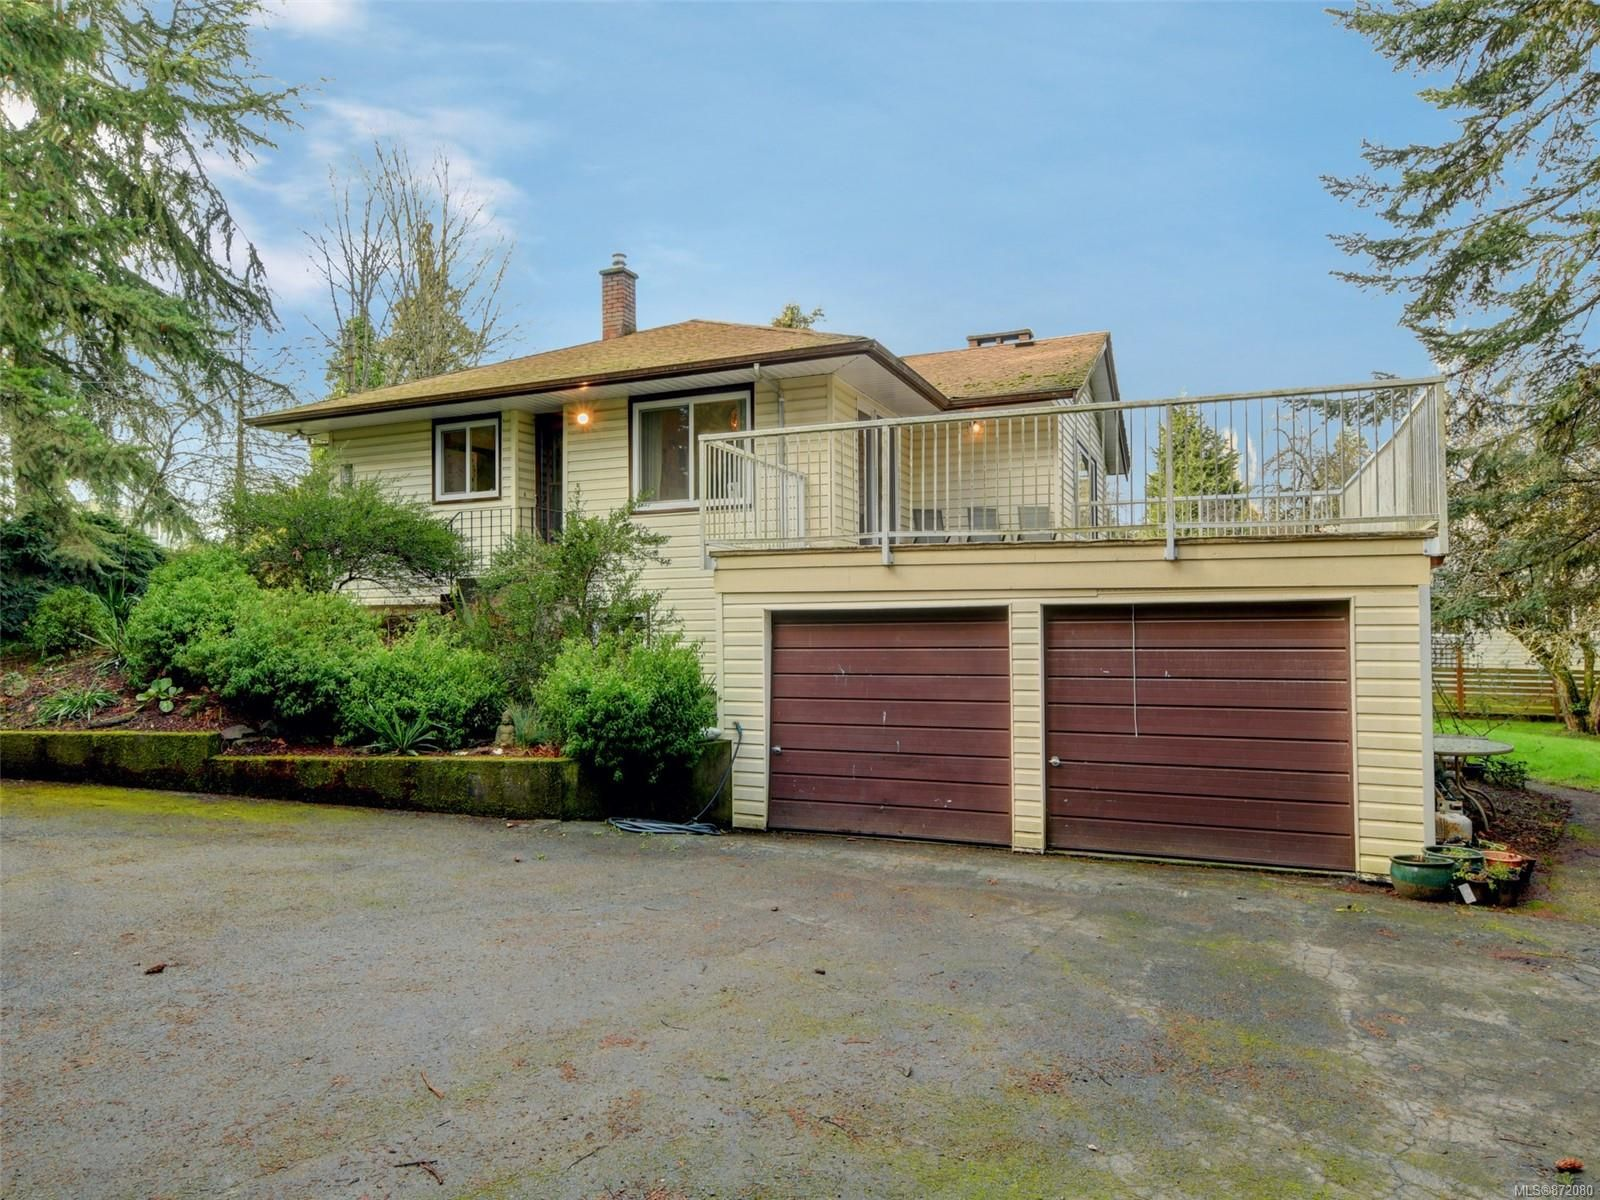 Main Photo: 7487 East Saanich Rd in : CS Saanichton House for sale (Central Saanich)  : MLS®# 872080